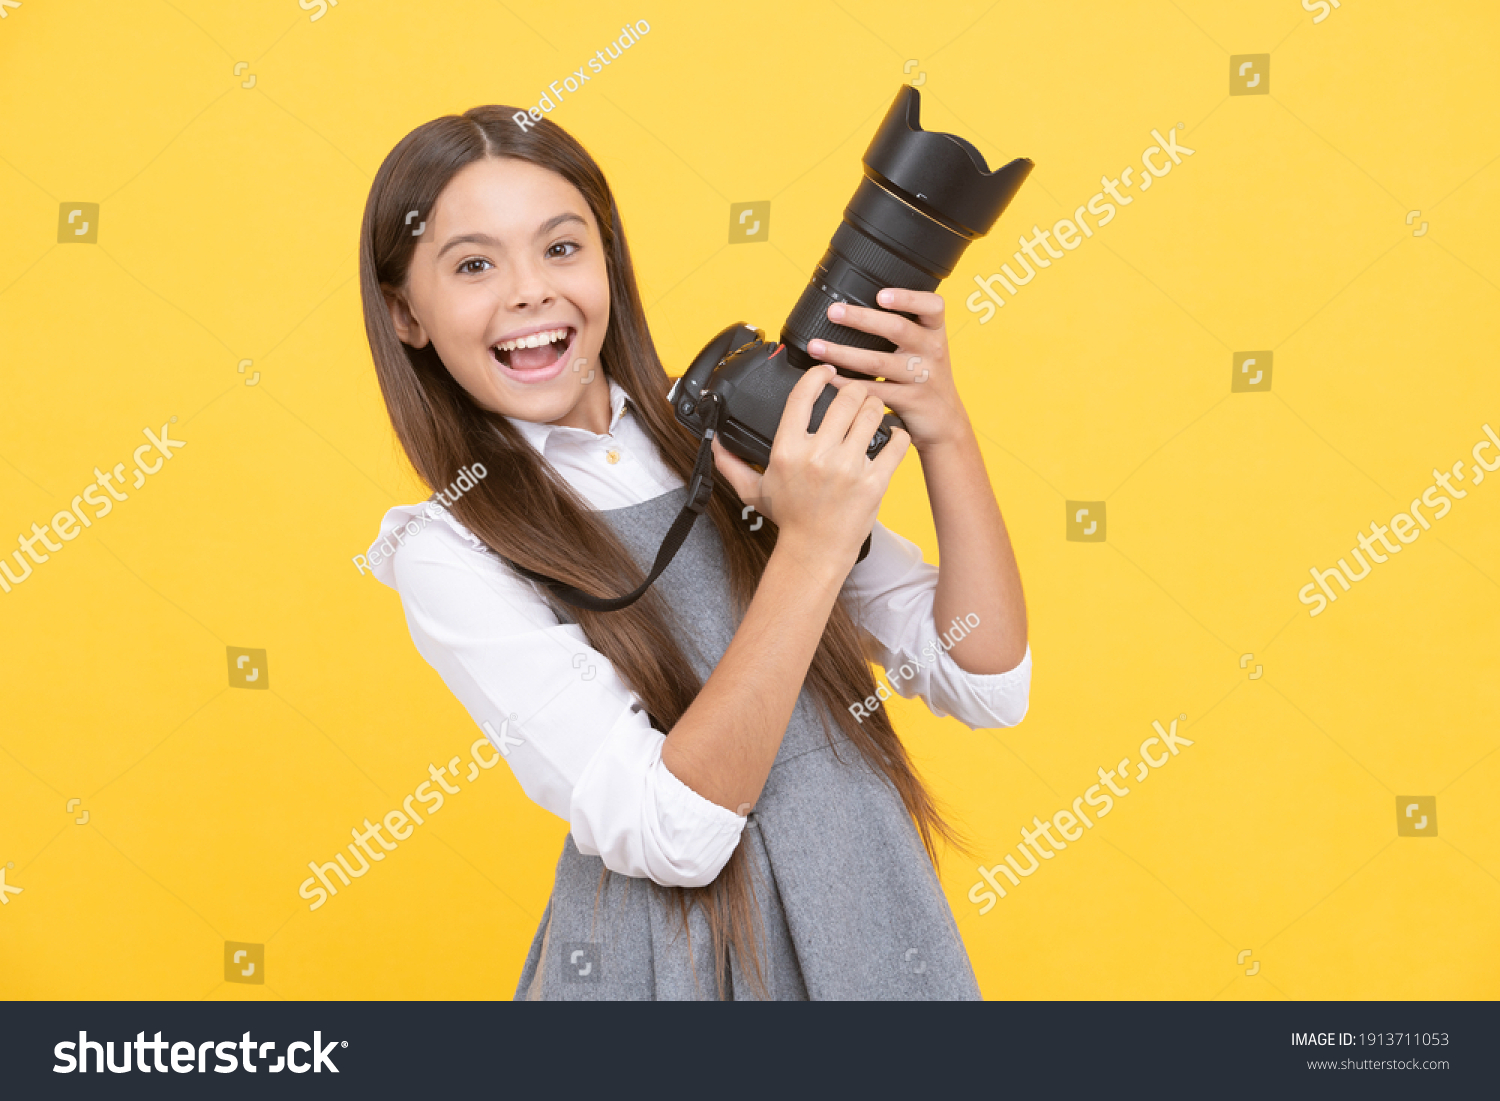 pure happiness. hobby or career. photographer beginner with modern camera. making video. childhood. teen girl taking photo. kid use digital camera. happy child photographing. school of photography. #1913711053